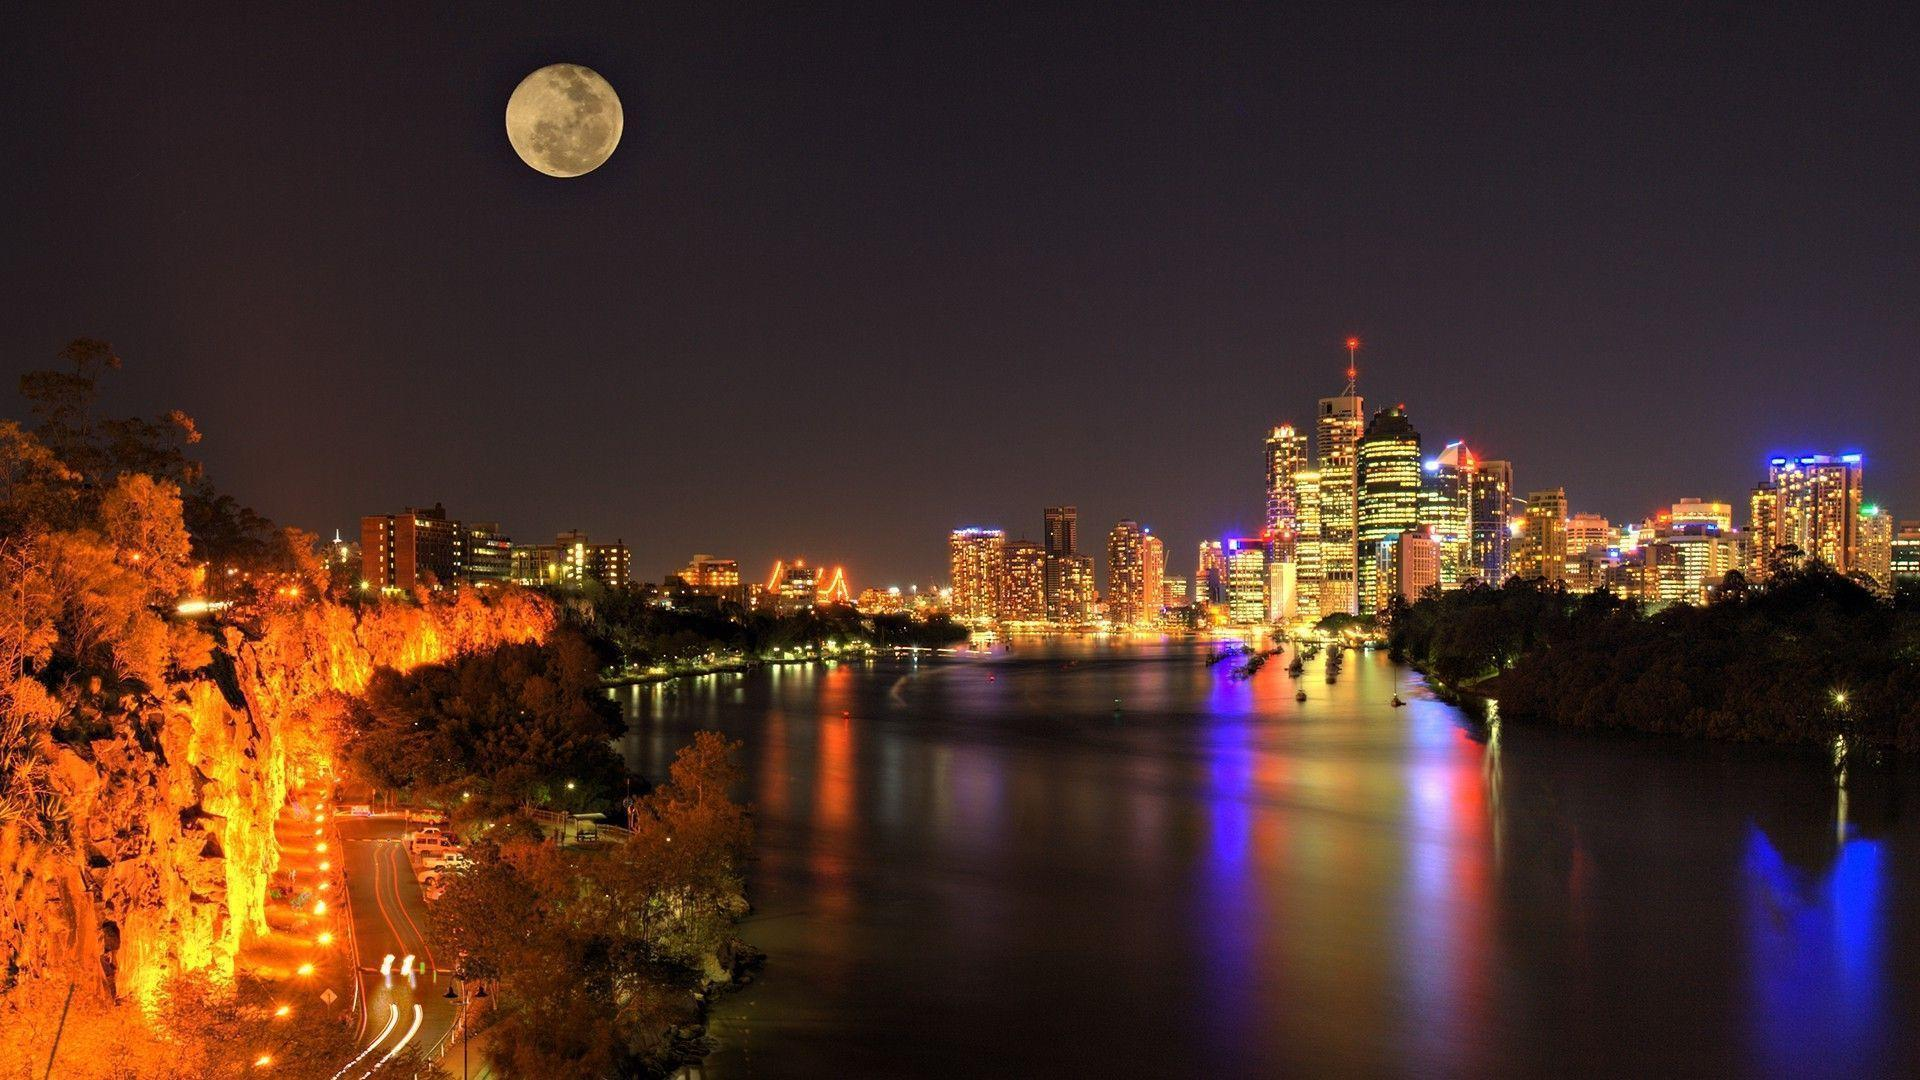 cityscape, Lights, Building, Moon, River, Australia, Brisbane ...